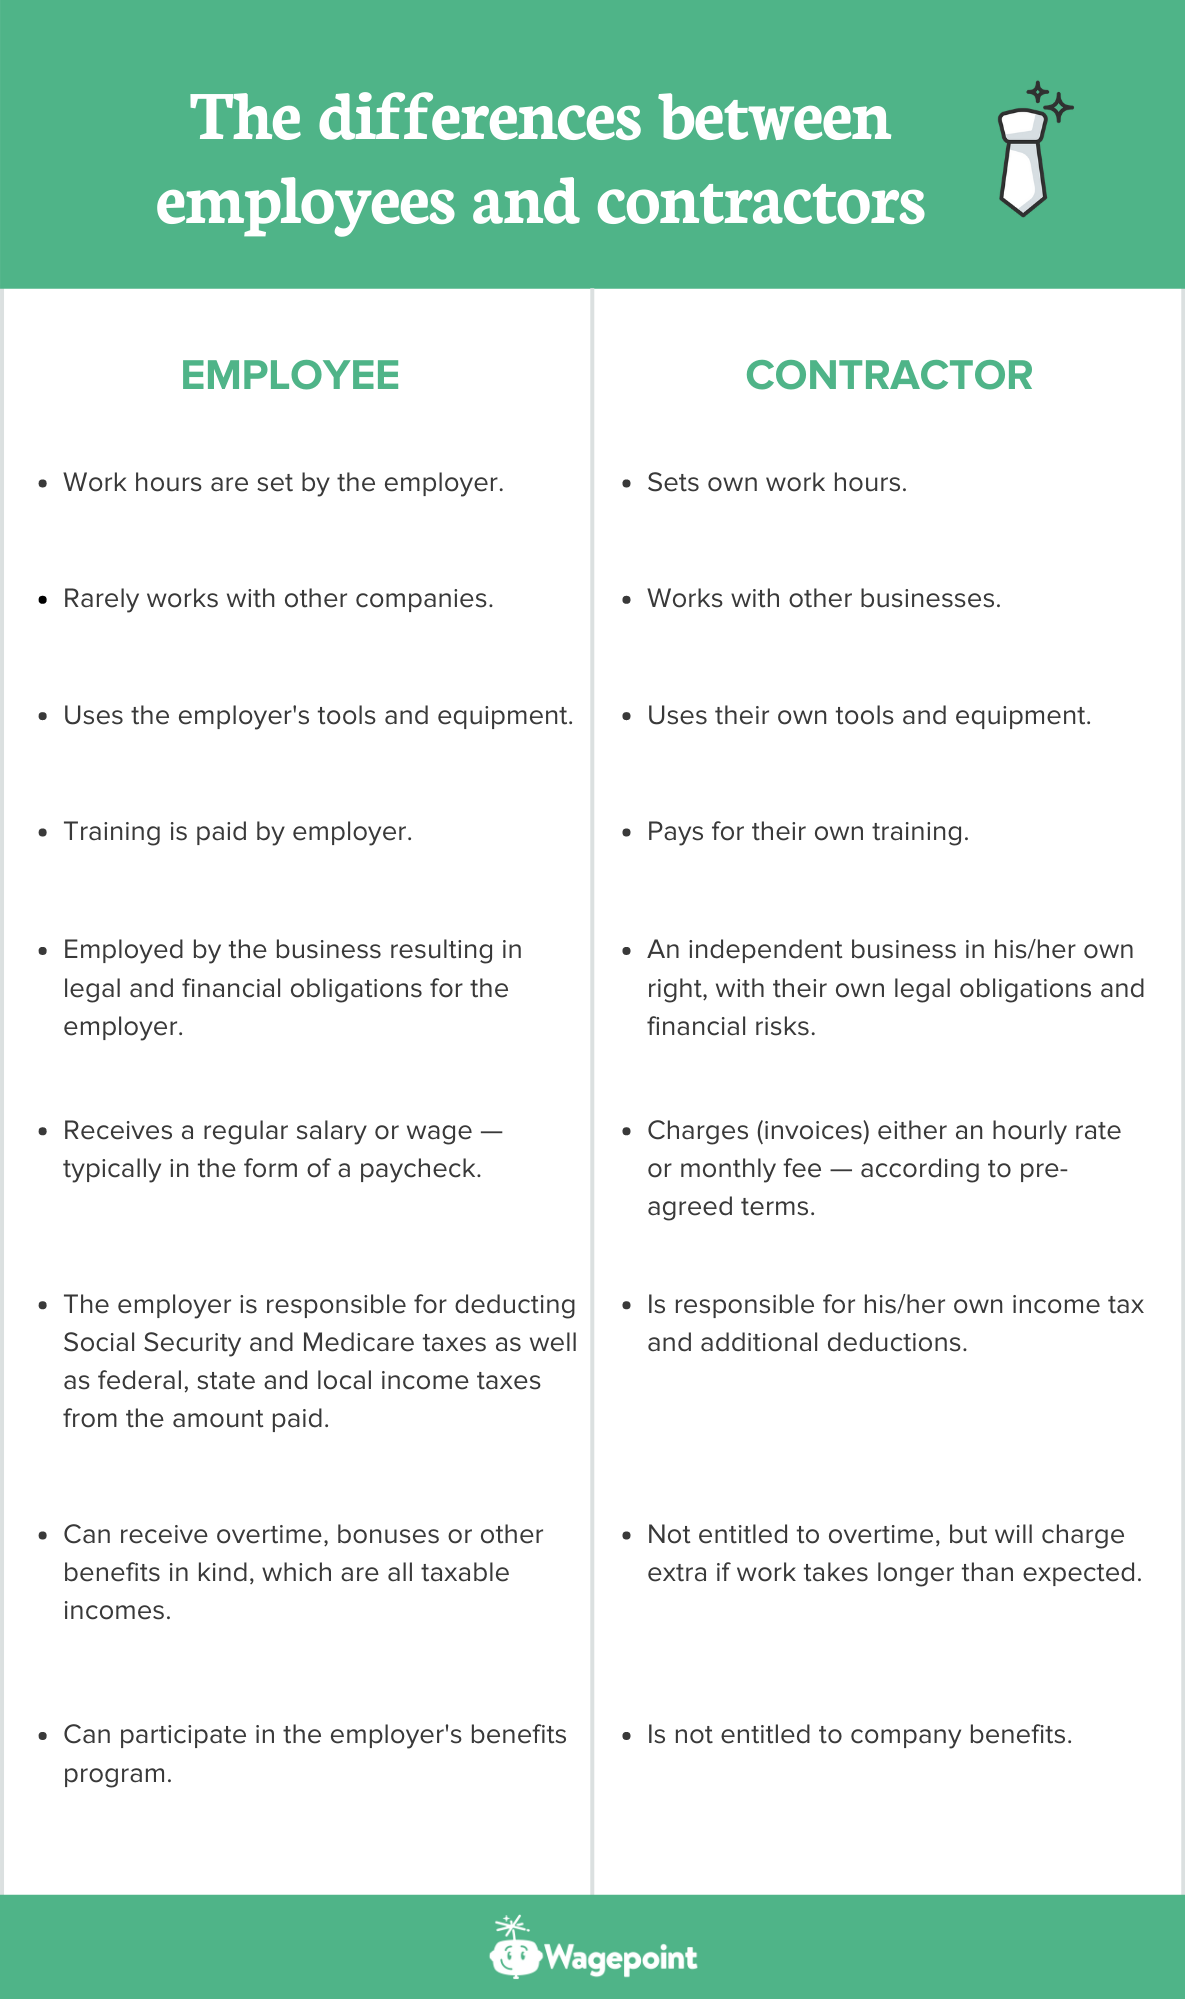 contractors vs employees wagepoint US differences table